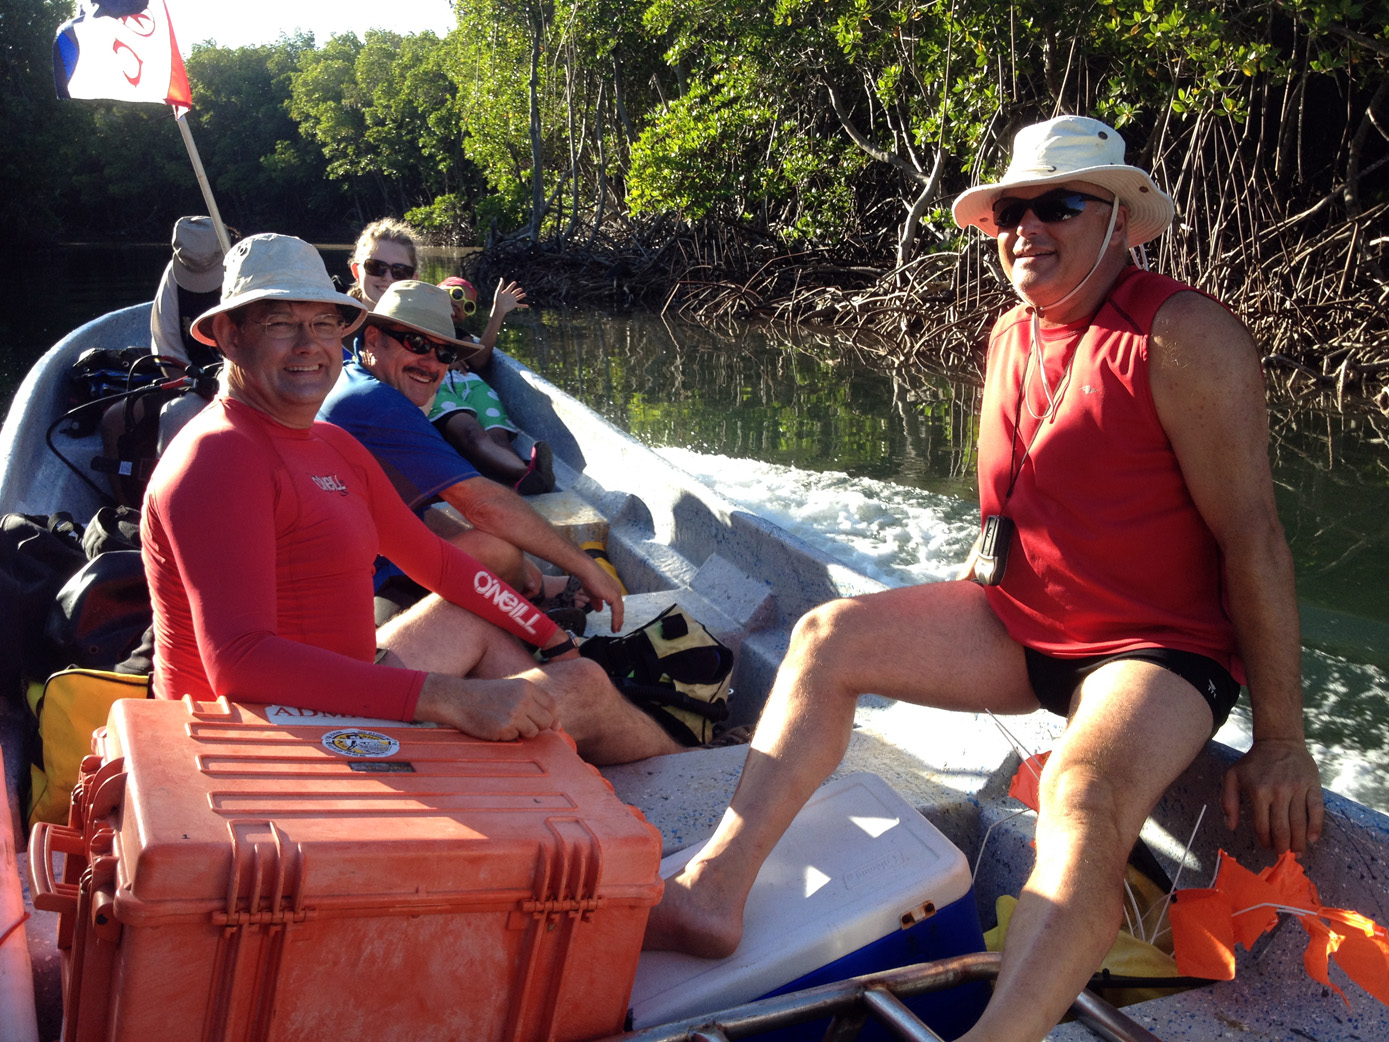 Dr Spooner, Christine O' Sullivan (under the hat),  Nikki Bose, John Downing, Ruth Pion, and Raimund Krob on the way to   Le Casimir   wreck site in 2014